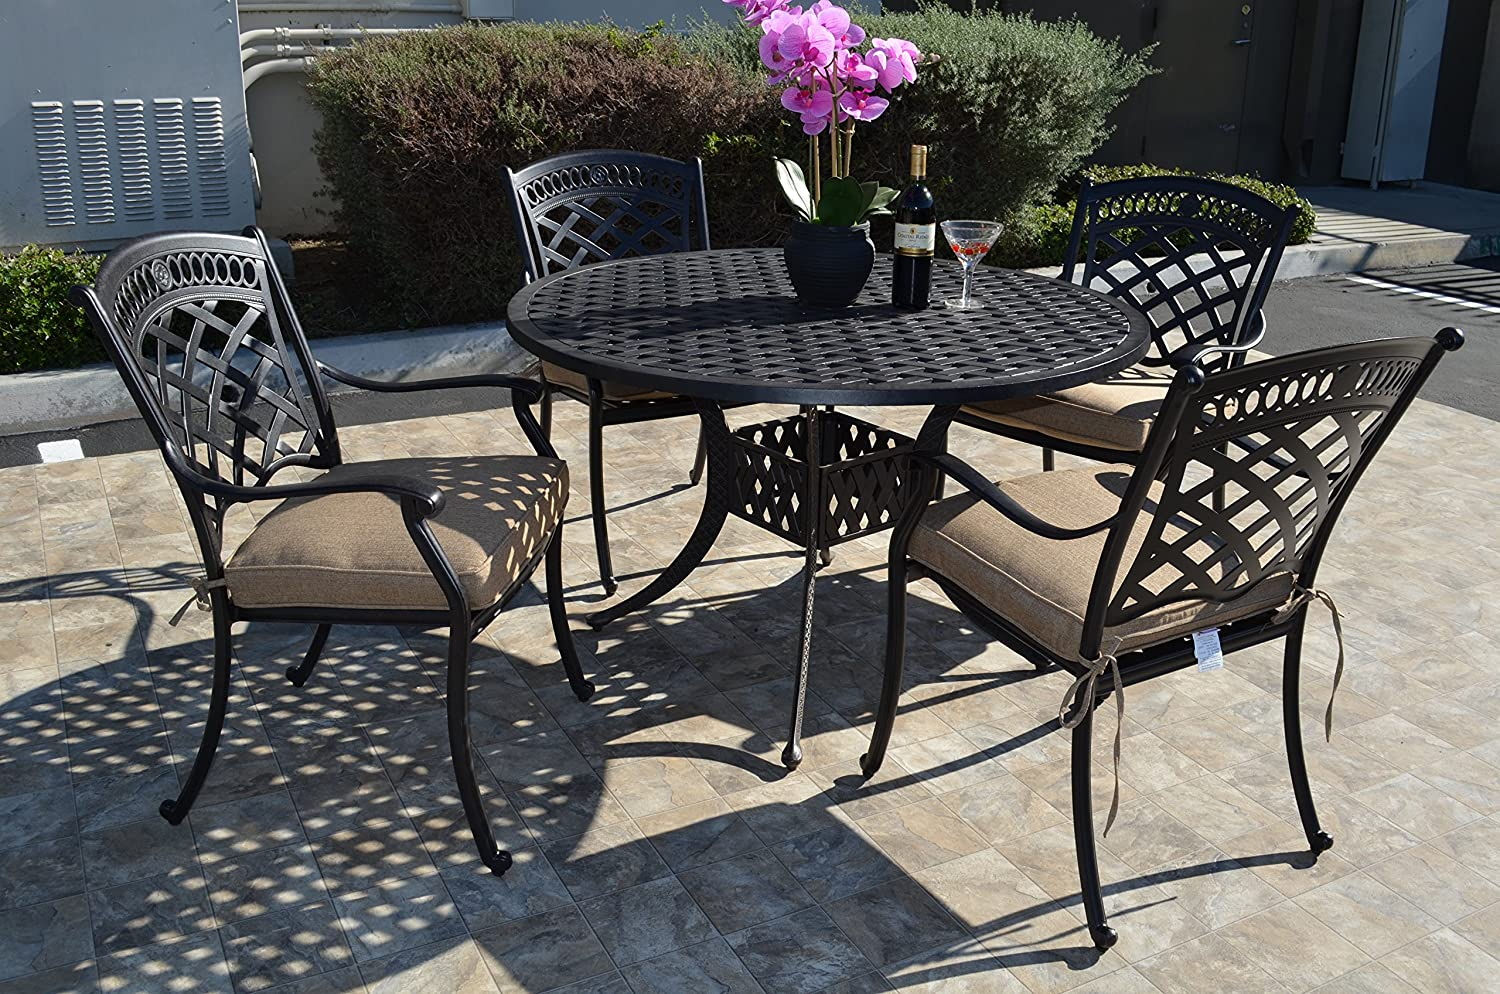 St. Augustine Cast Aluminum Powder Coated 5pc Outdoor Patio Dining Set with 48 Round Table with Sunbrella Cushions- Antique Bronze